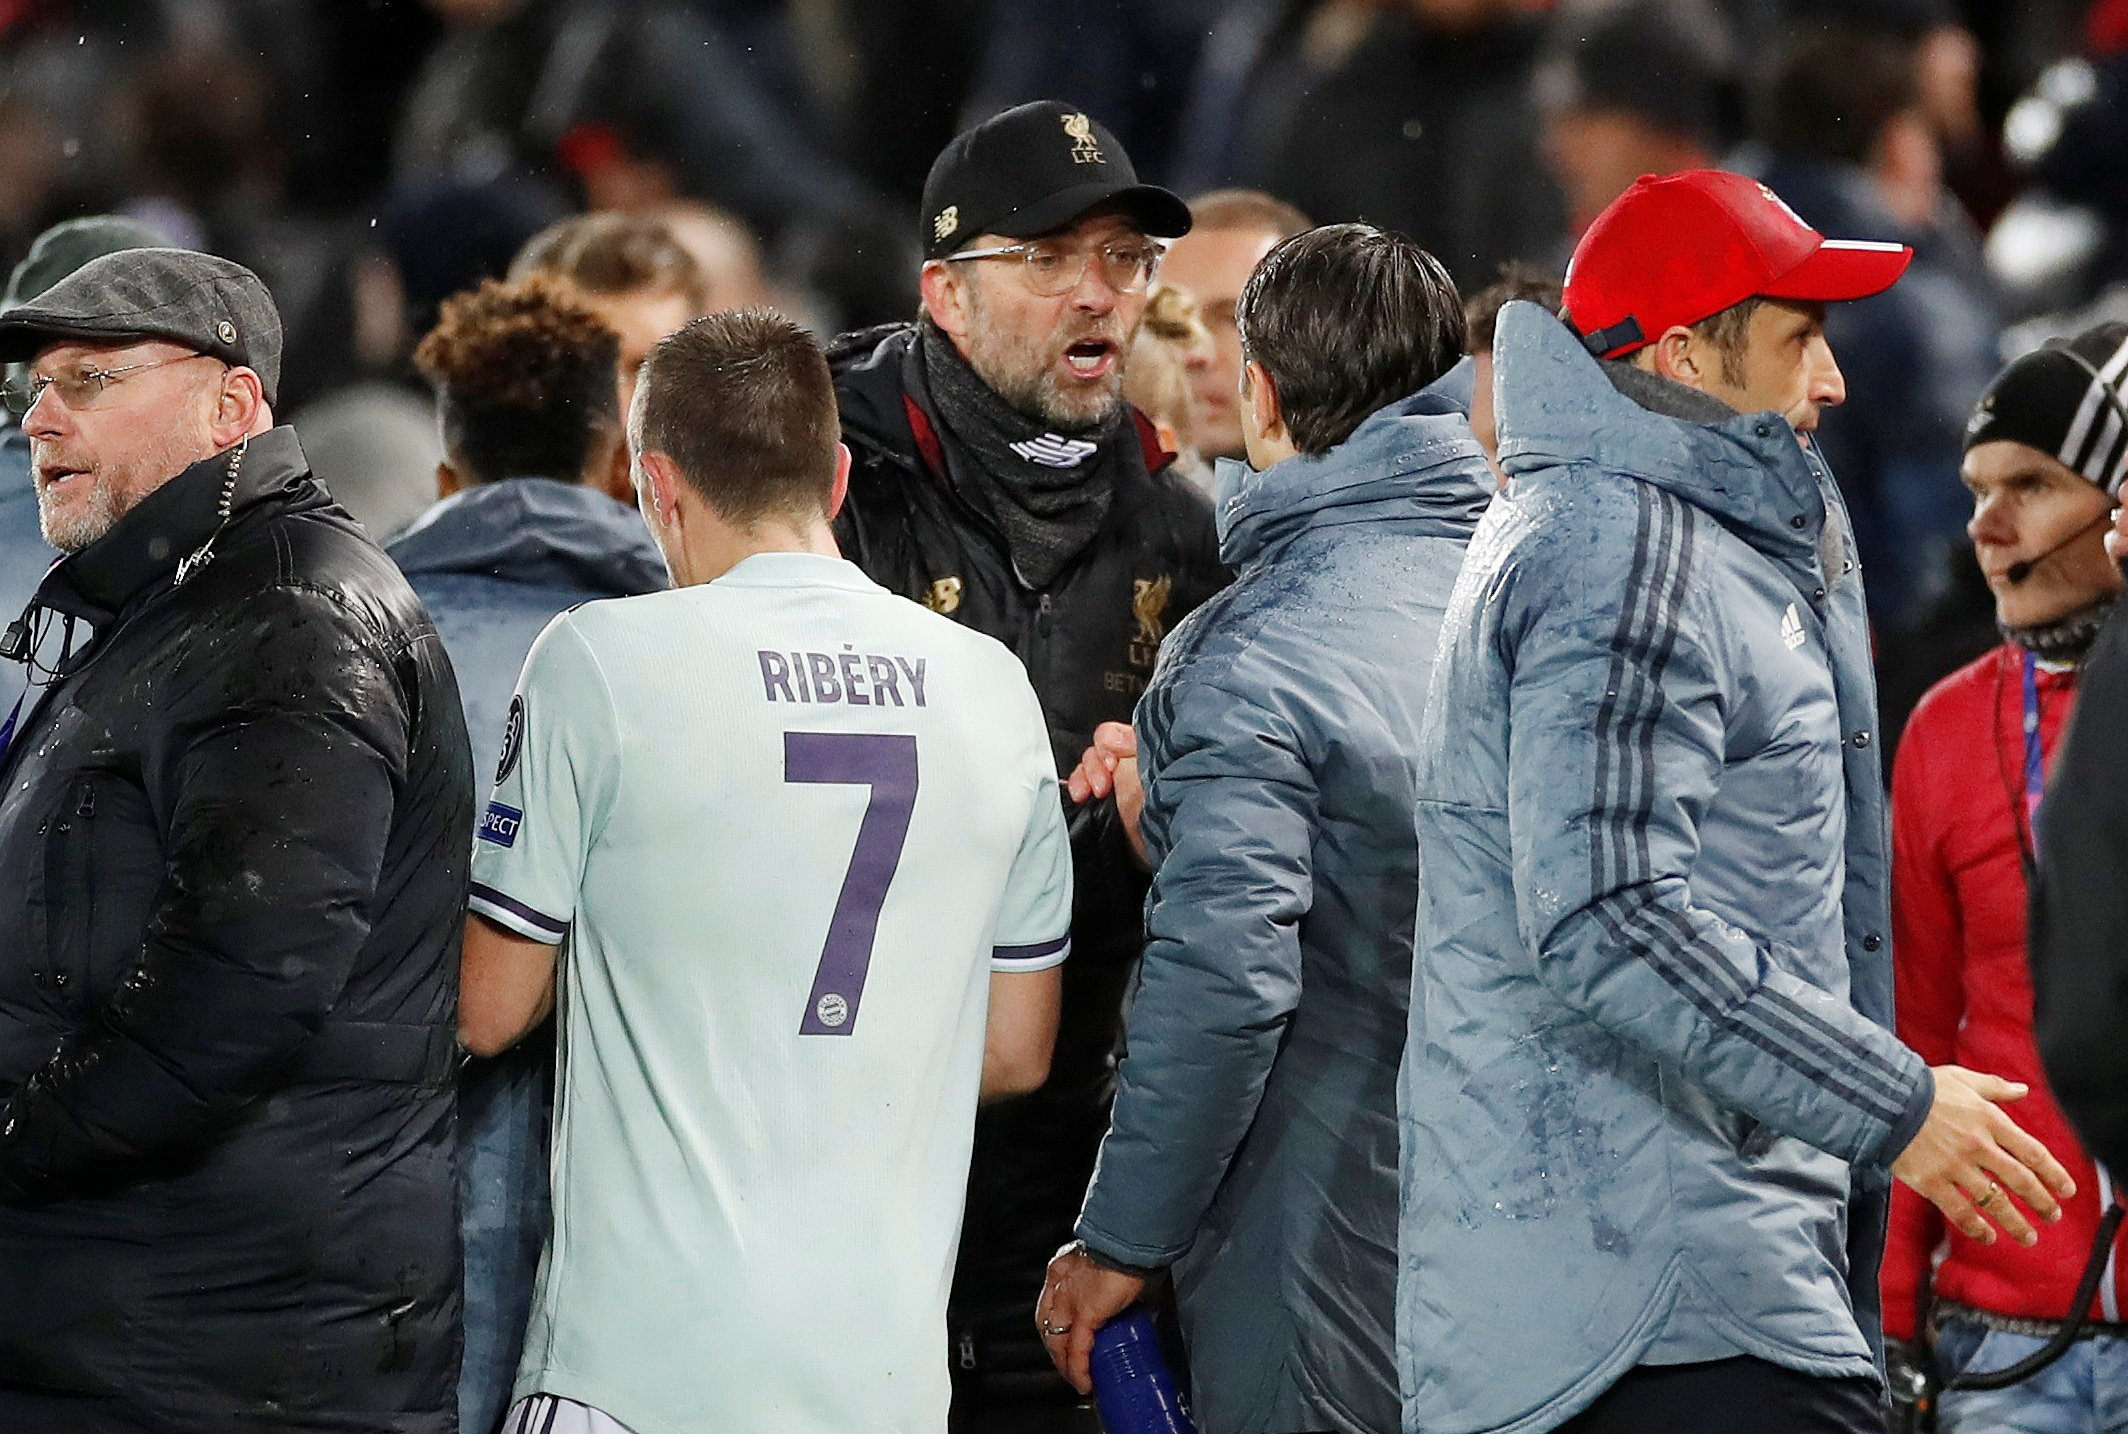 Liverpool v Bayern Munich - Why Jurgen Klopp was angry with Niko Kovac at full-time